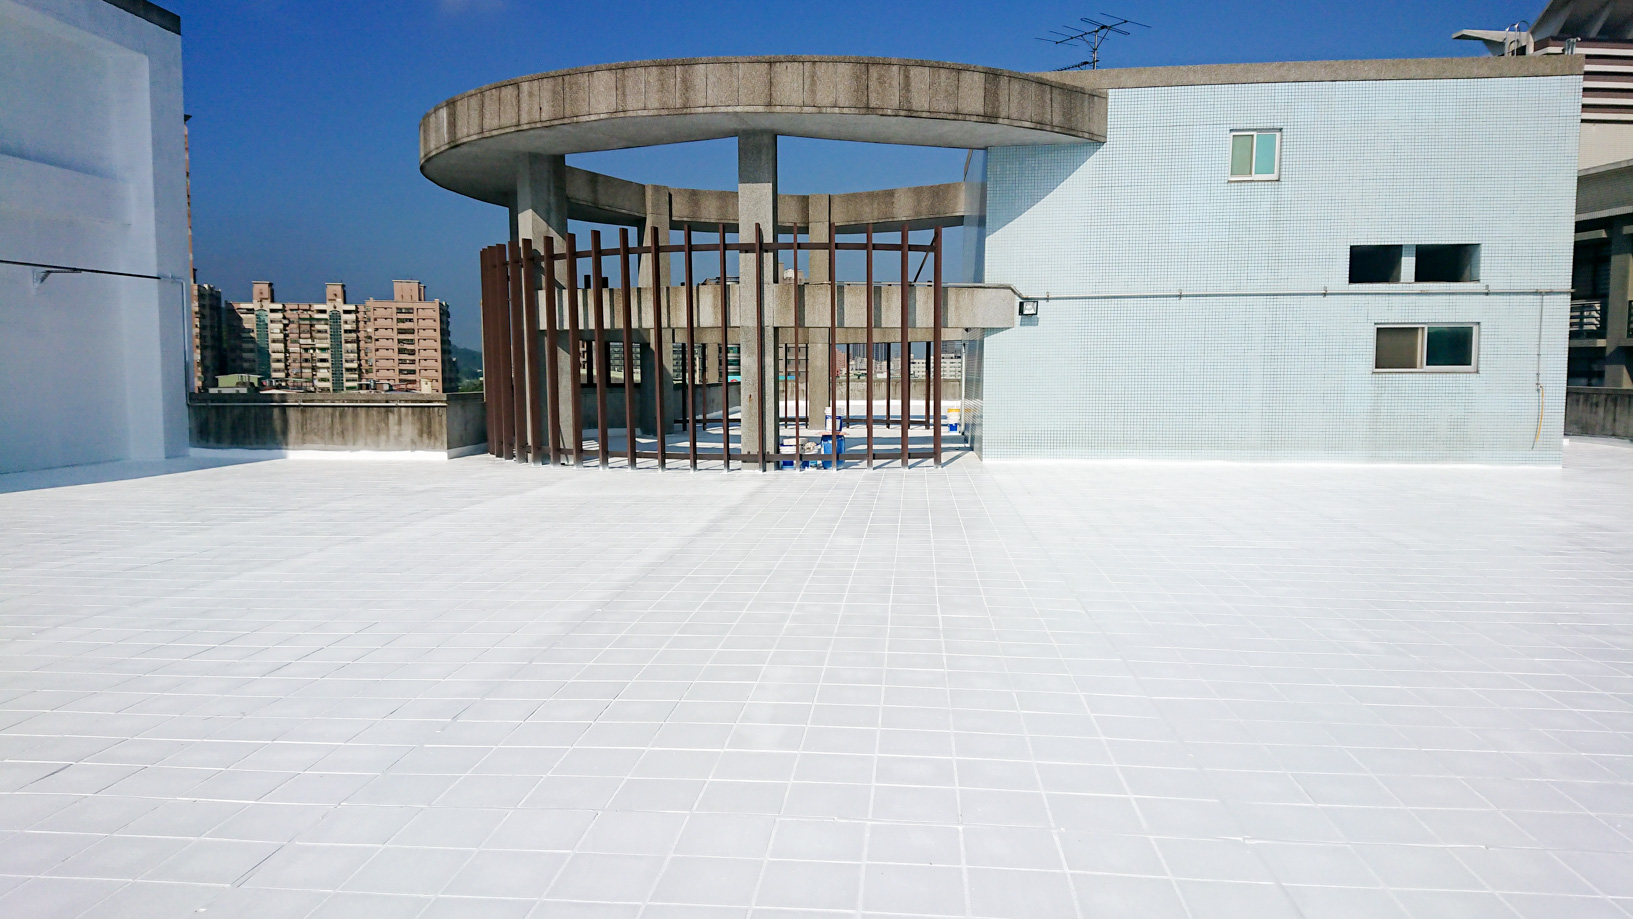 Roof thermal insulation engineering completed for conserving energy to reduce carbon emission